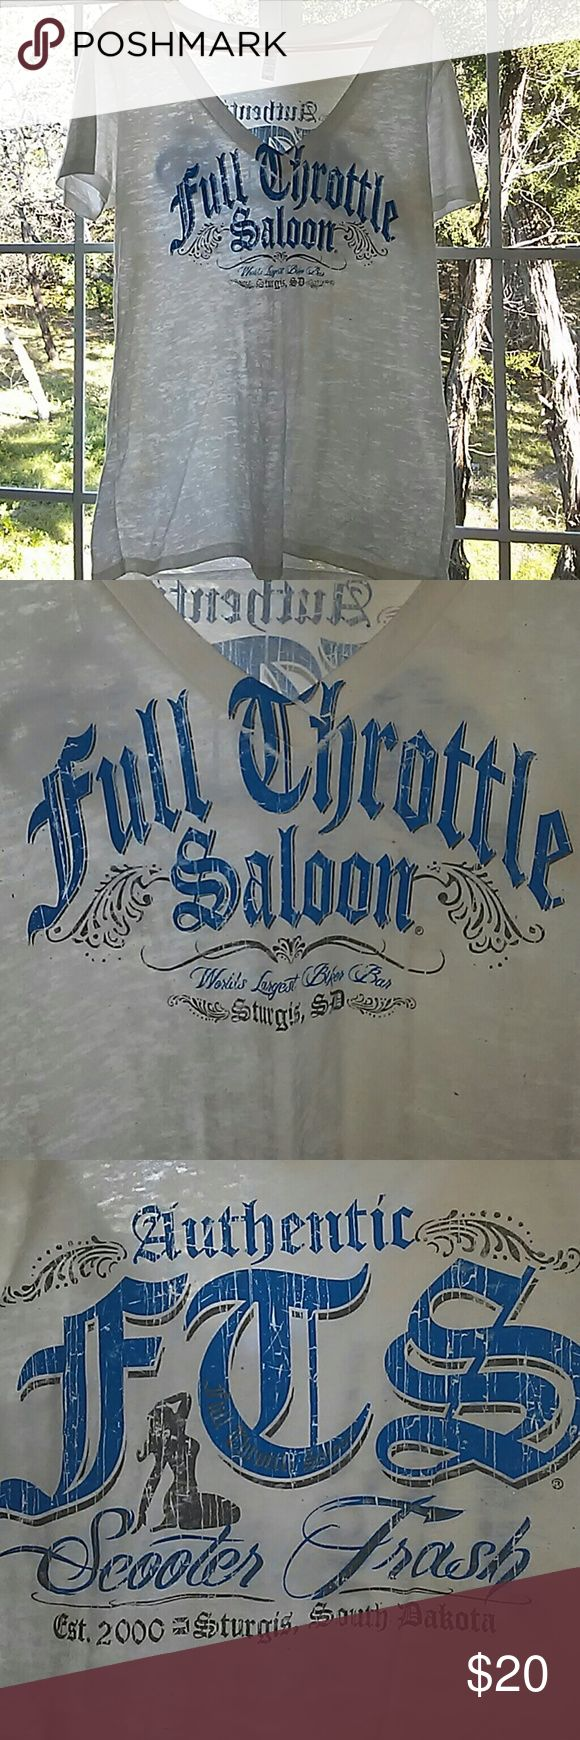 Sturgis, SD Shirt The real deal.. Went in 2000.. Like NEW.. WORE LIKE TWICE.. FITS MORE LIKE XL.. Sturgis, South Dakota Scooter Trash.. Tops Tees - Short Sleeve